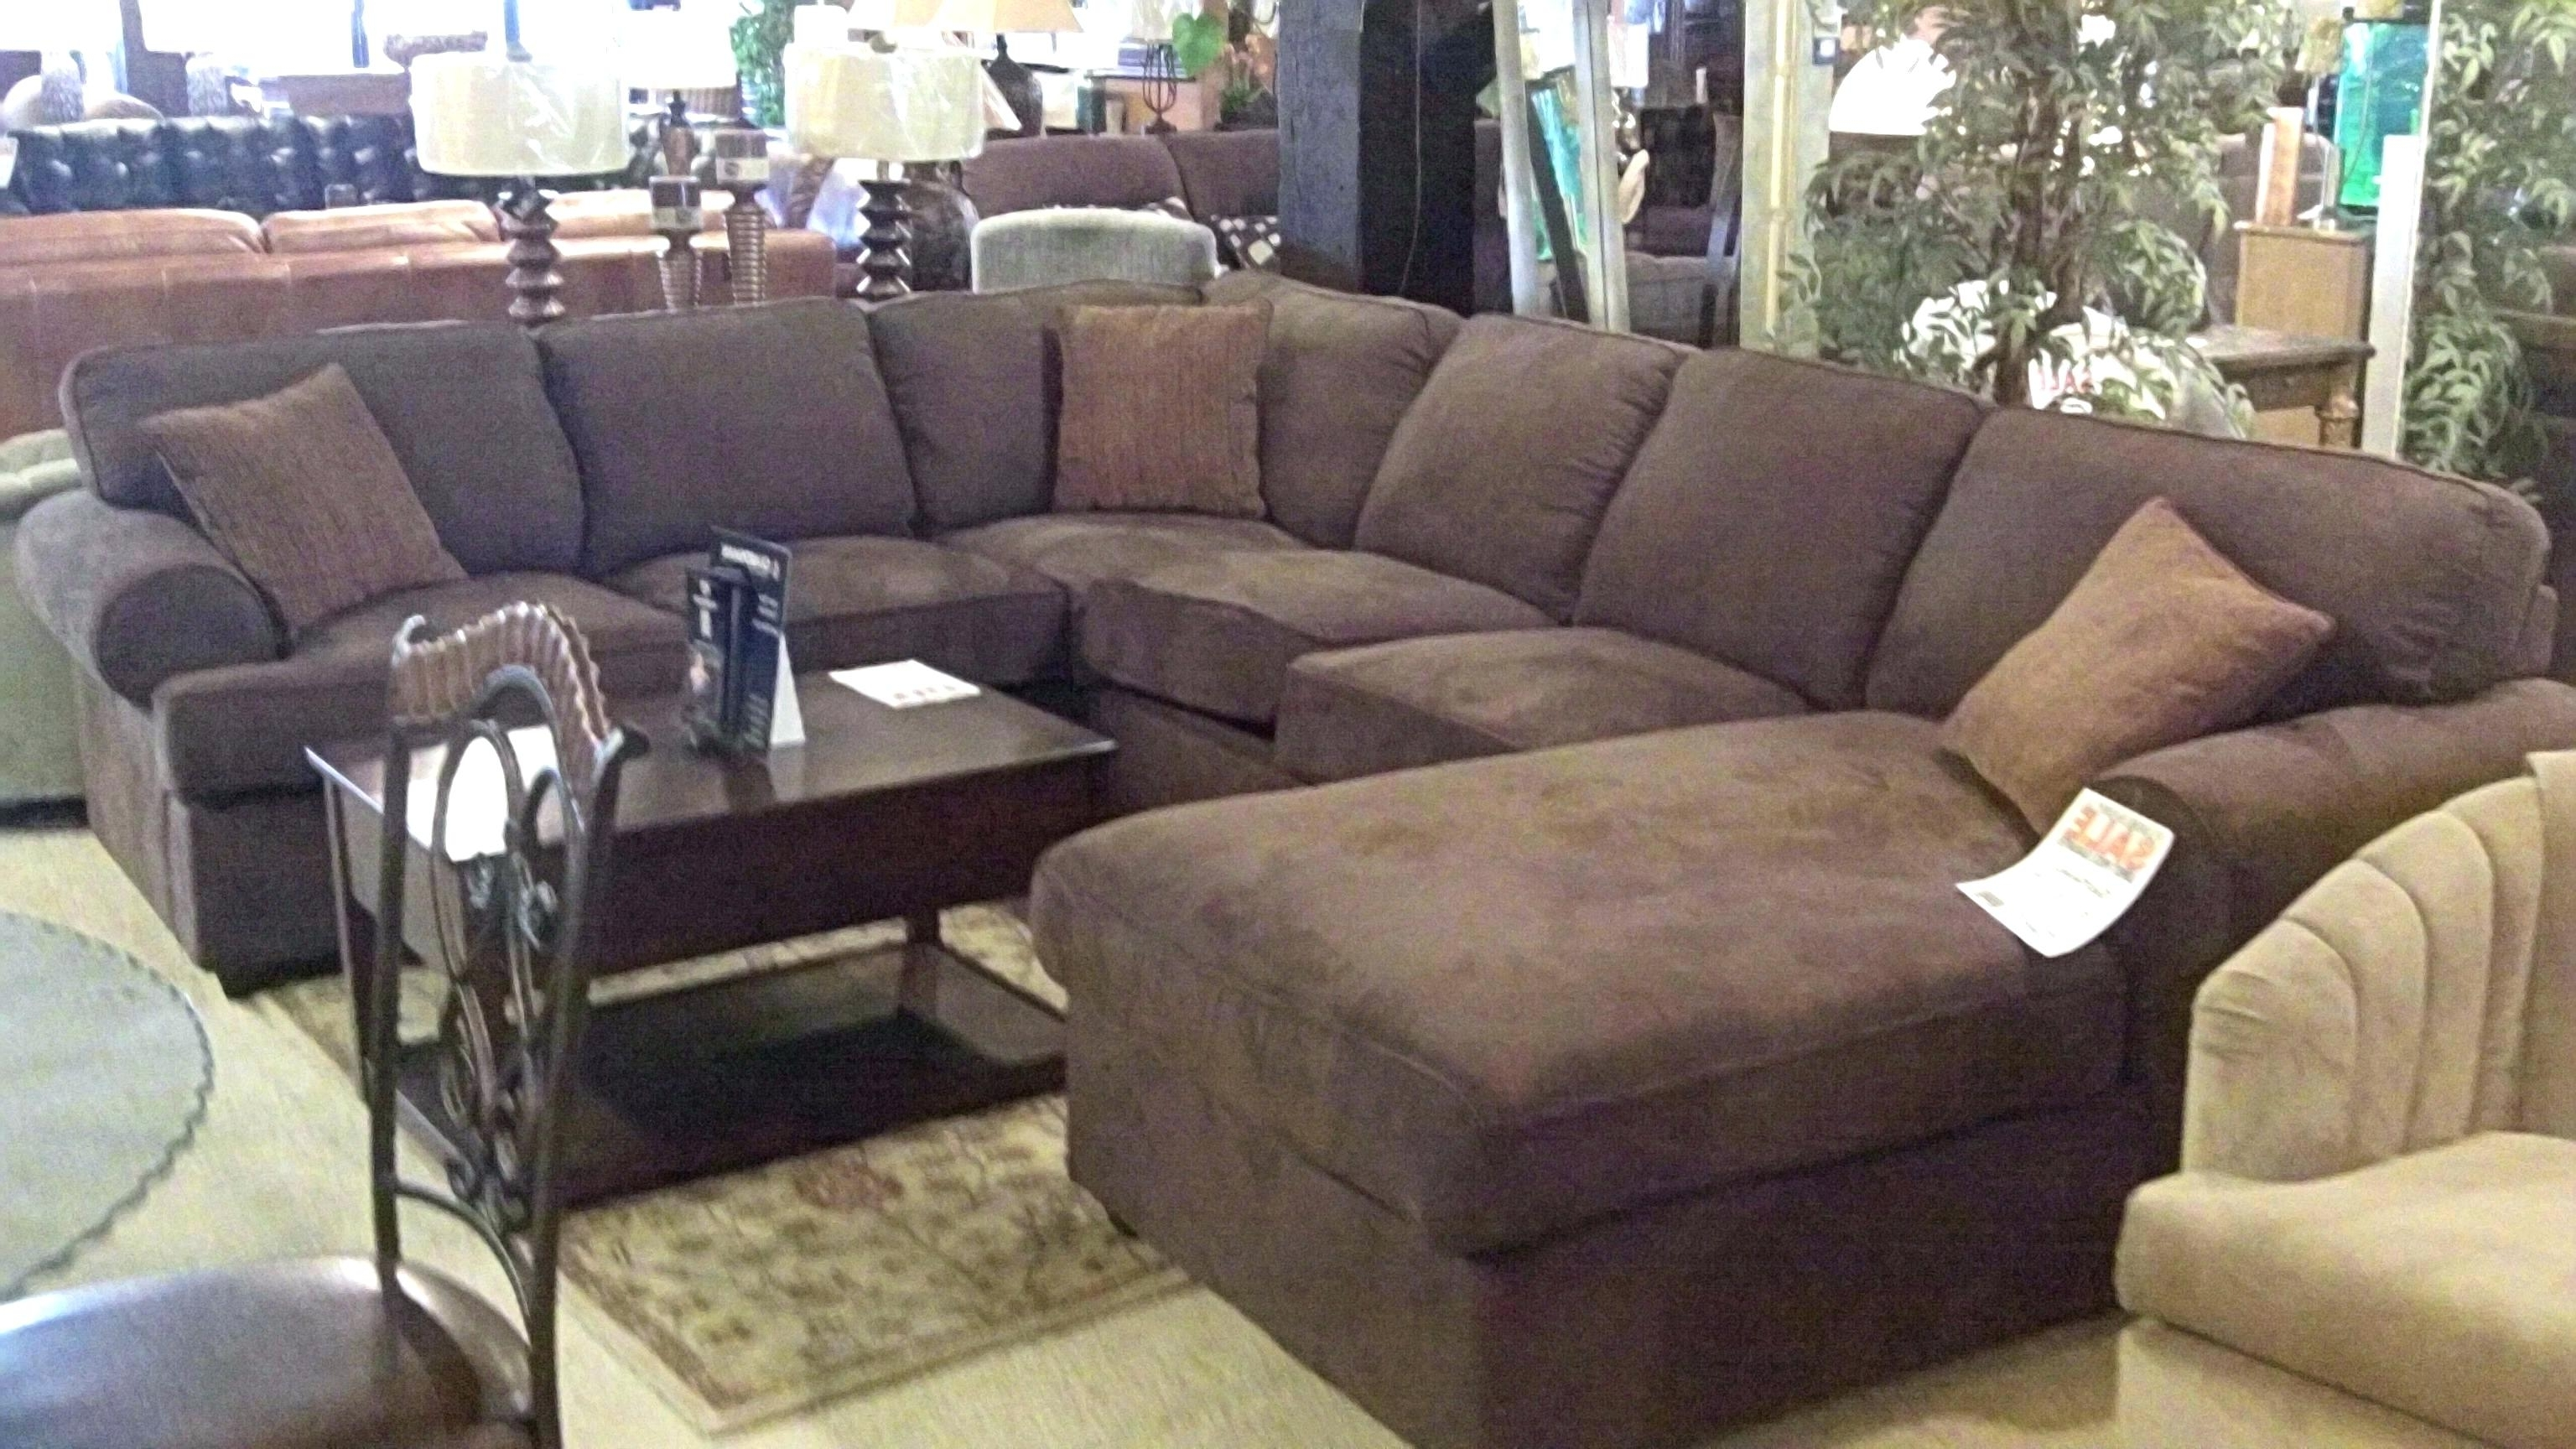 Jcpenney Couch – Ncgeconference Regarding Current Jcpenney Sectional Sofas (Gallery 5 of 20)